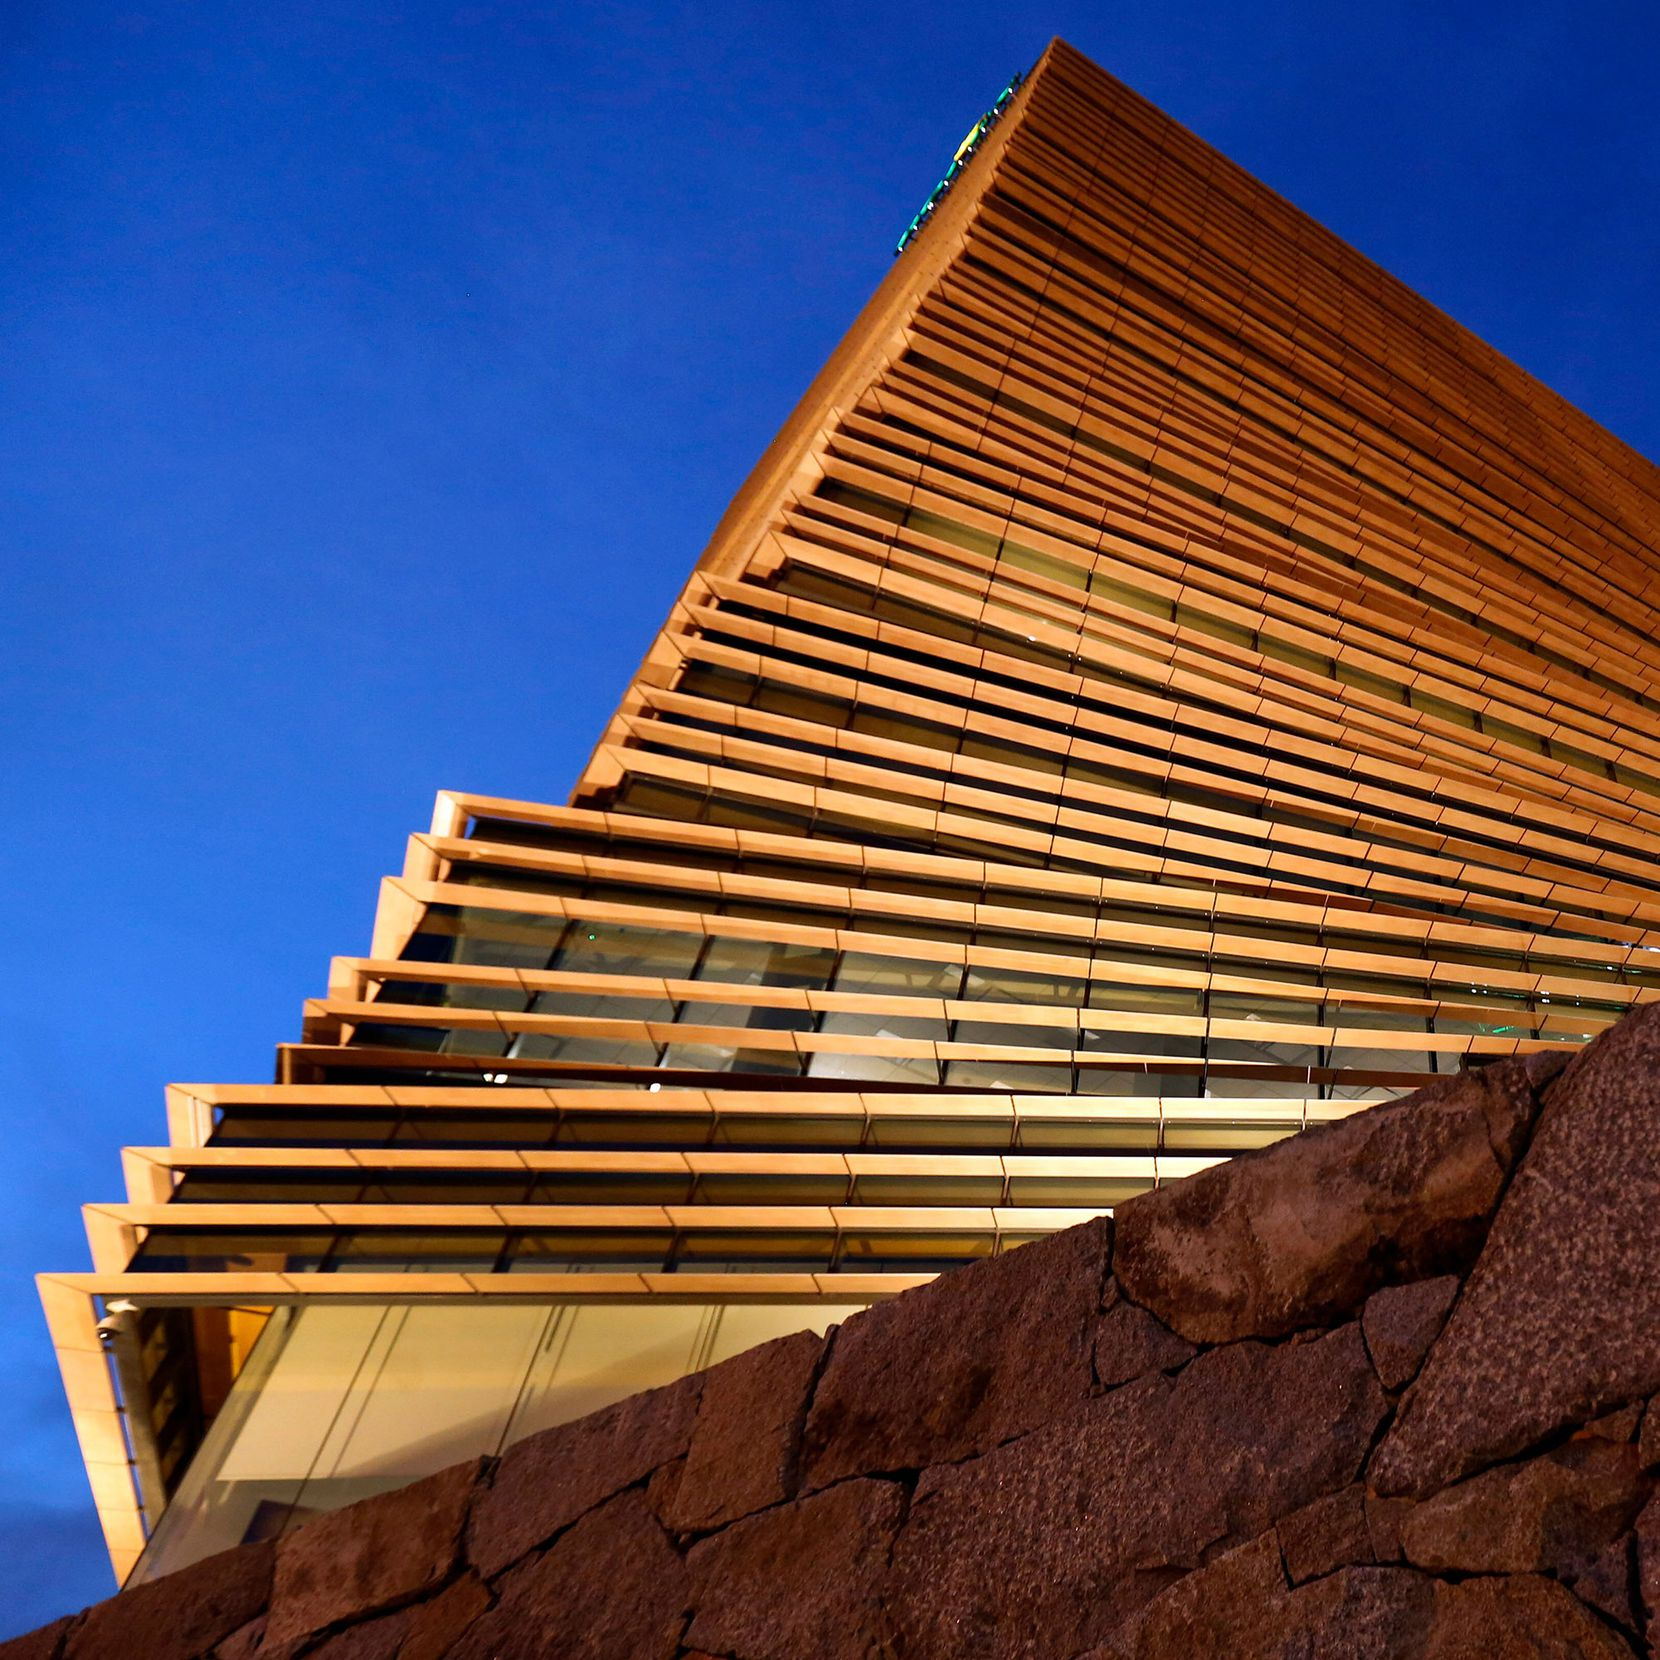 Kengo Kuma's spiraling Rolex Tower is the most sophisticated tall building to go up in Dallas since Fountain Place.